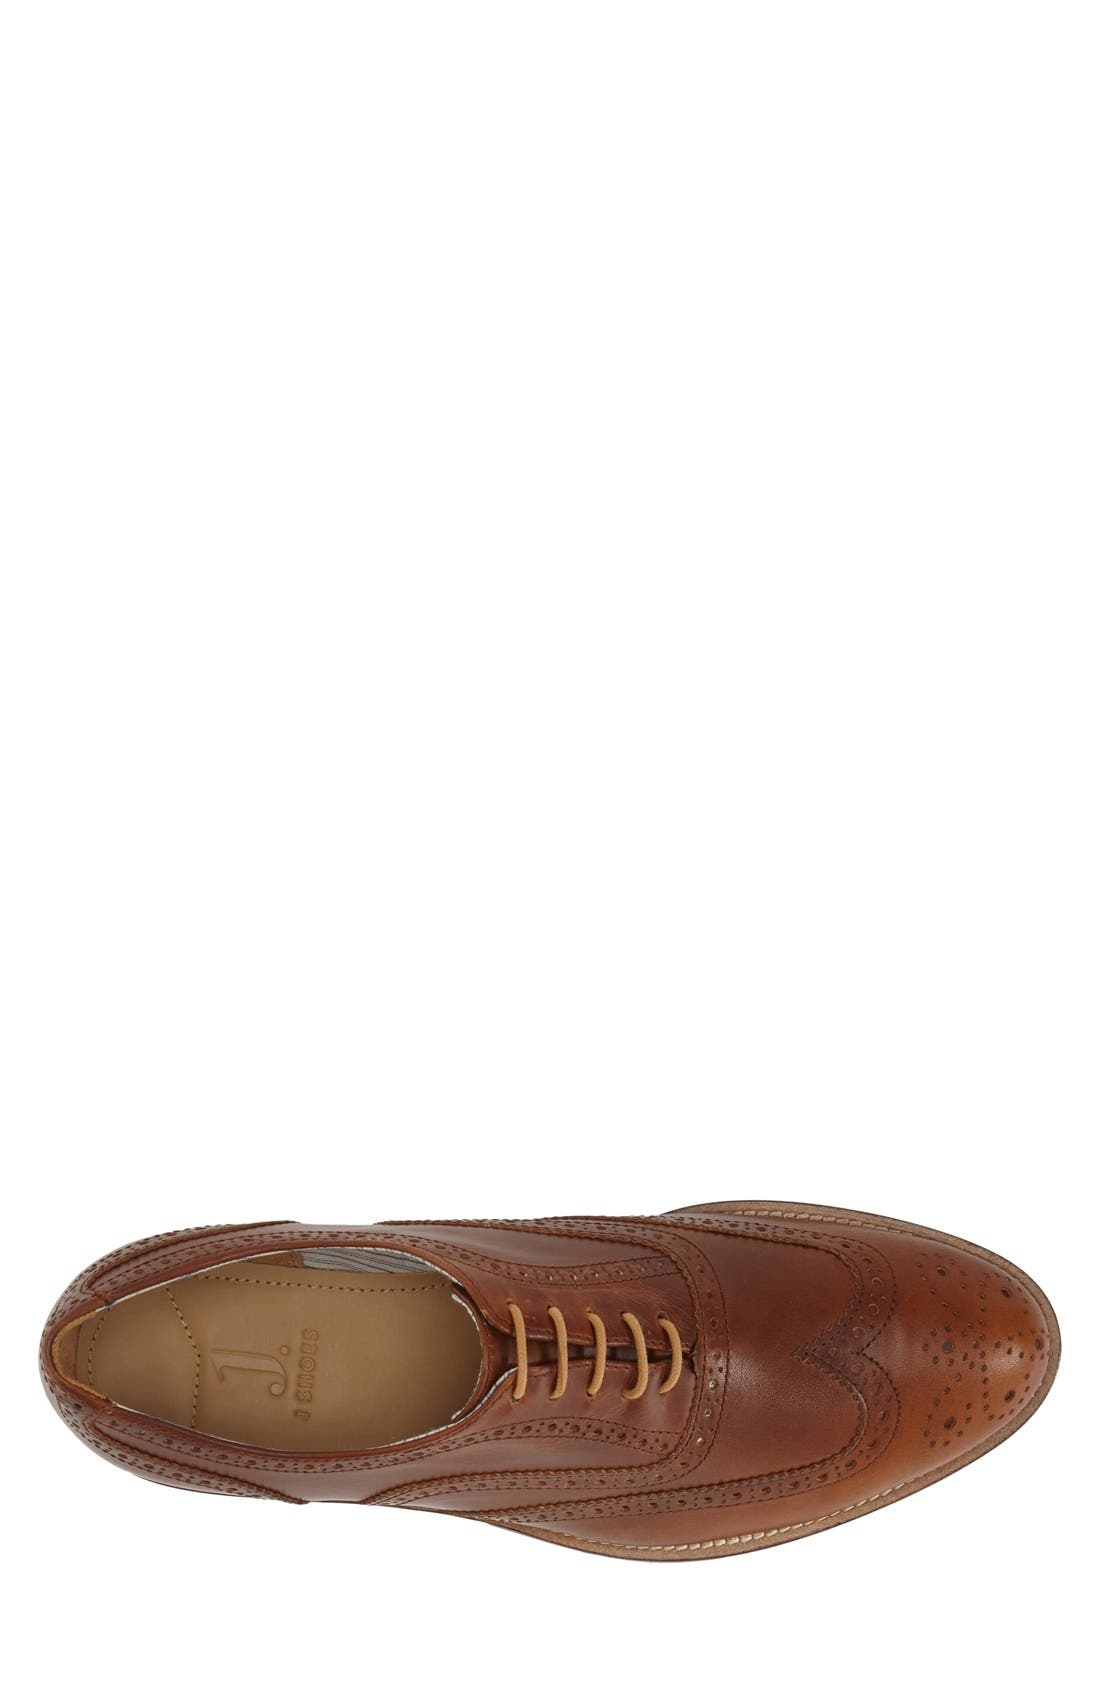 'Charlie Plus' Wingtip Oxford,                             Alternate thumbnail 3, color,                             BRASS LEATHER